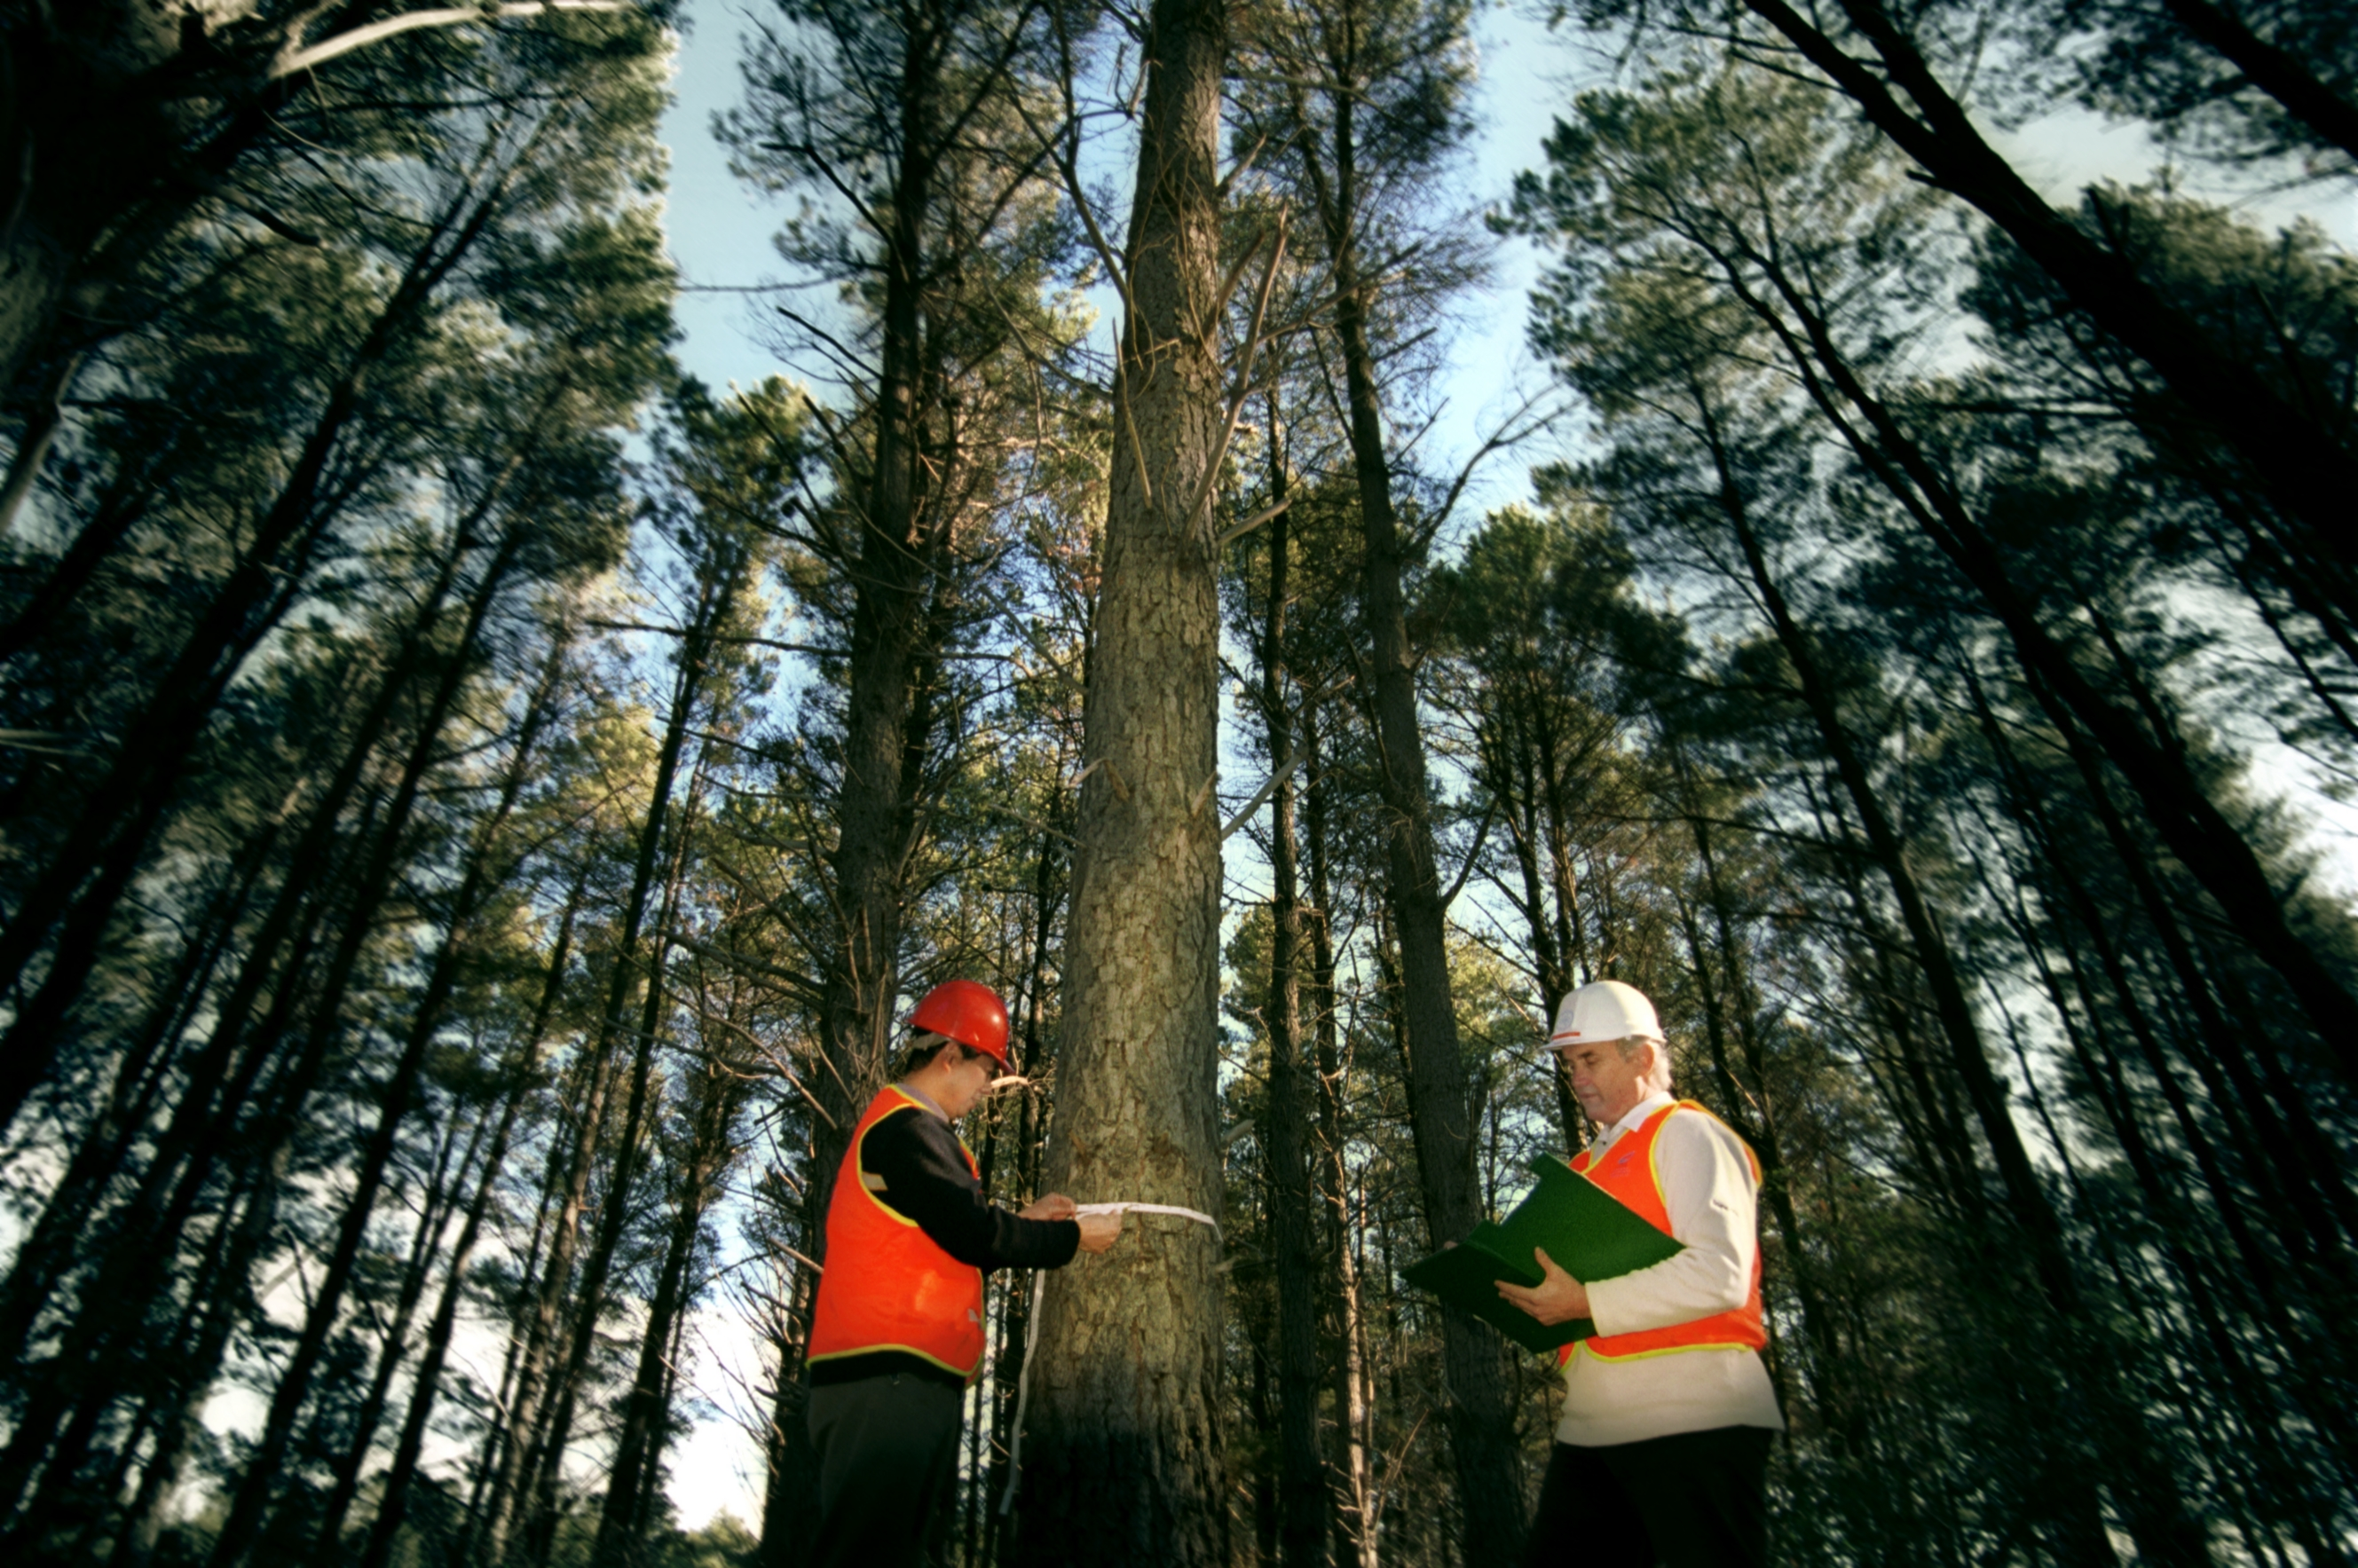 Two people standing in radiata pine forest, one person using flexible tape measure to measure around the girth of the radiata pine tree, the other person is recording data in the open clipboard.